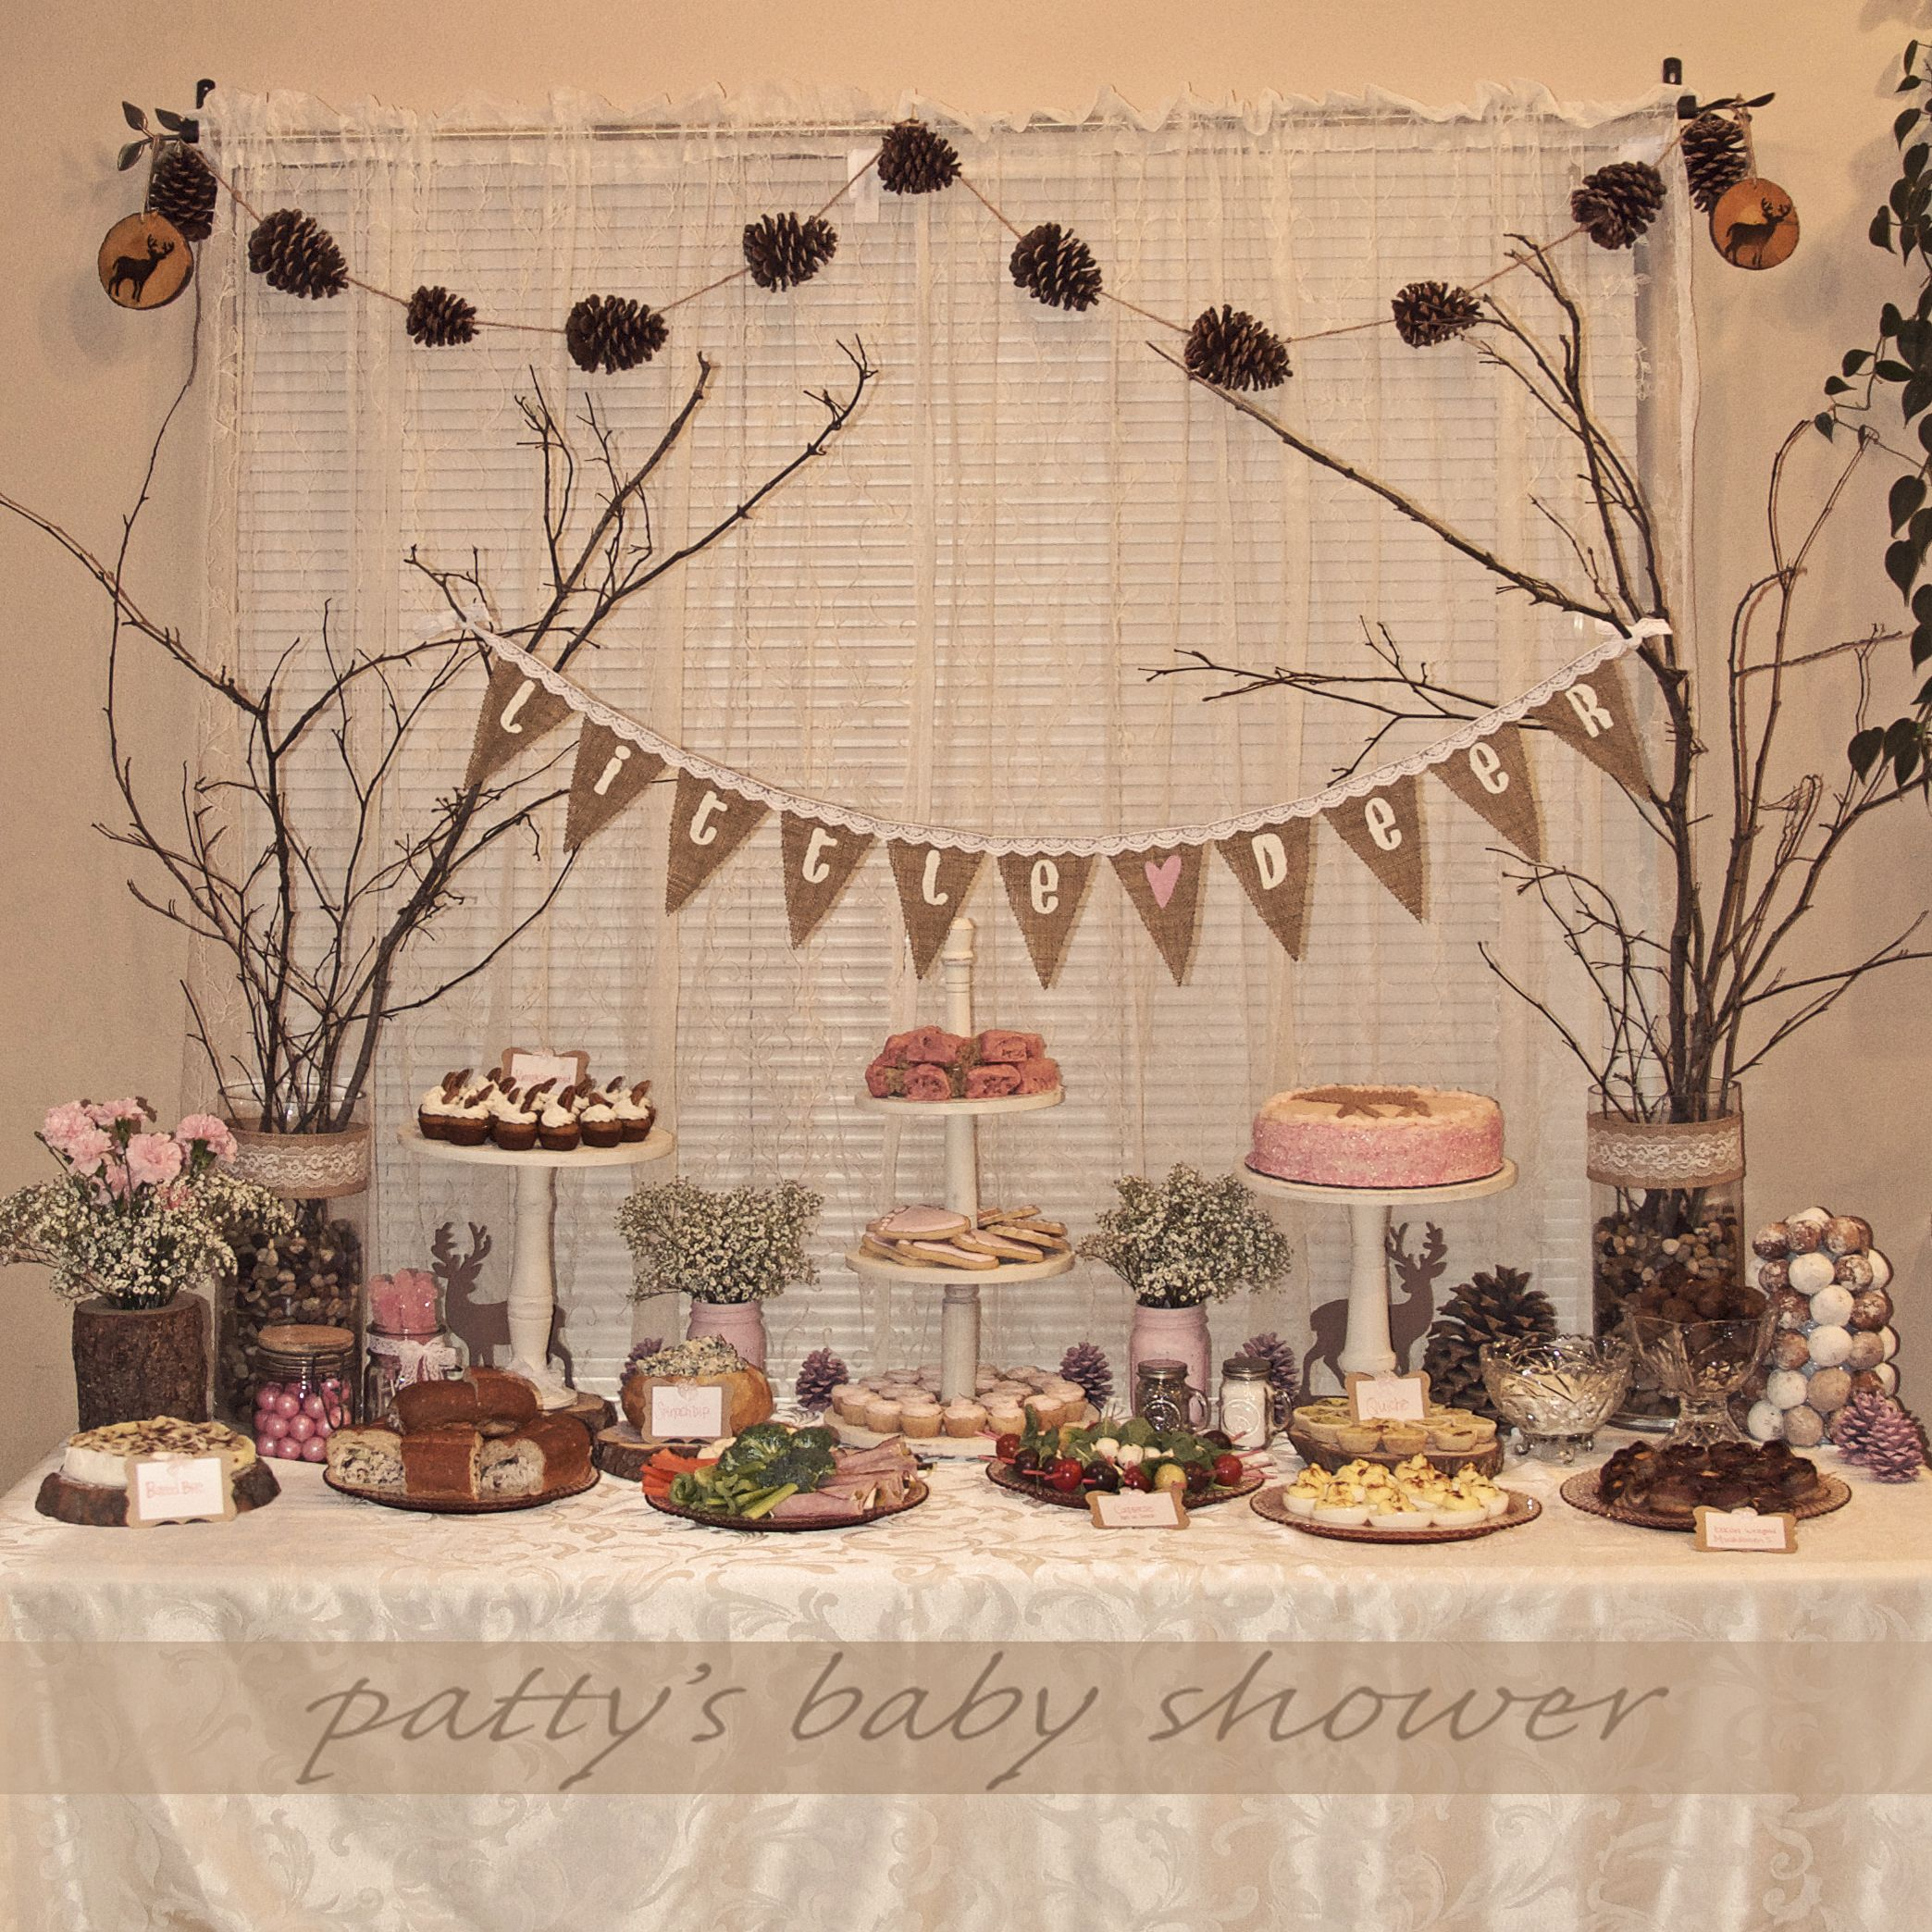 Rustic Baby Shower Deer Theme Country Pink Little Woodland Crafty DIY Girl Burlap Banner Pinecone Garland